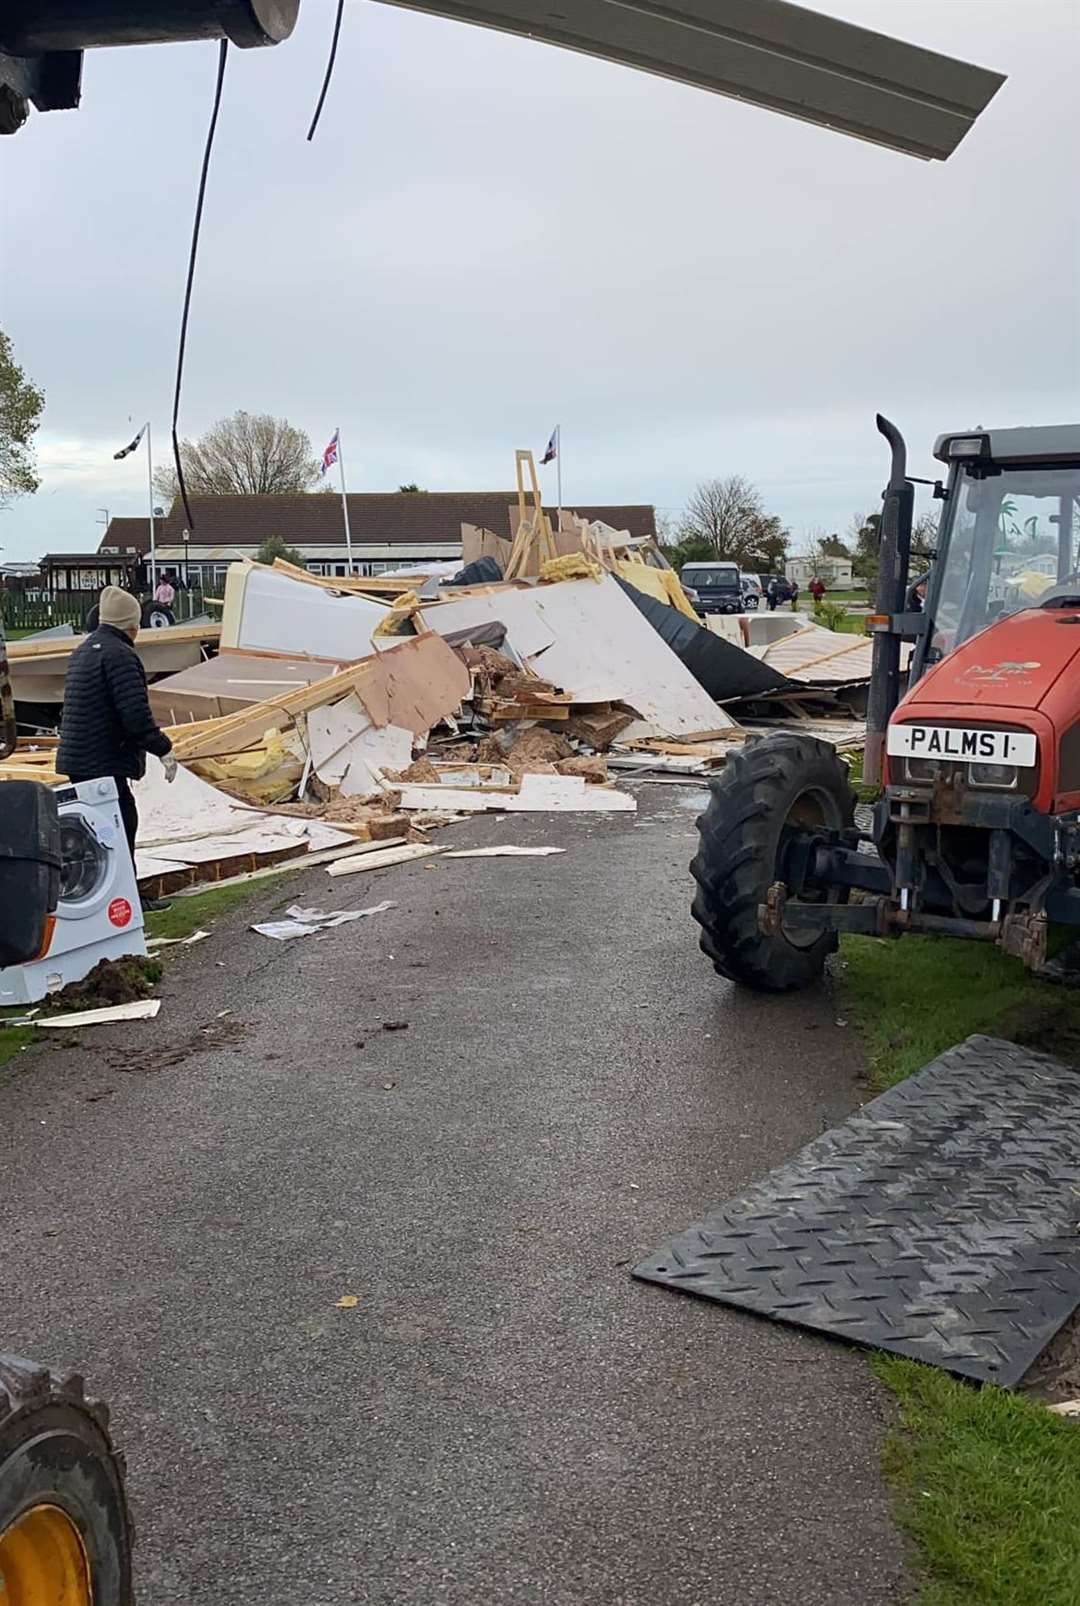 Work begins to clean up damage caused by high winds at the Palm Tree Holiday Park in Eastchurch. Picture courtesy Palm Tree Holiday Park on Facebook.